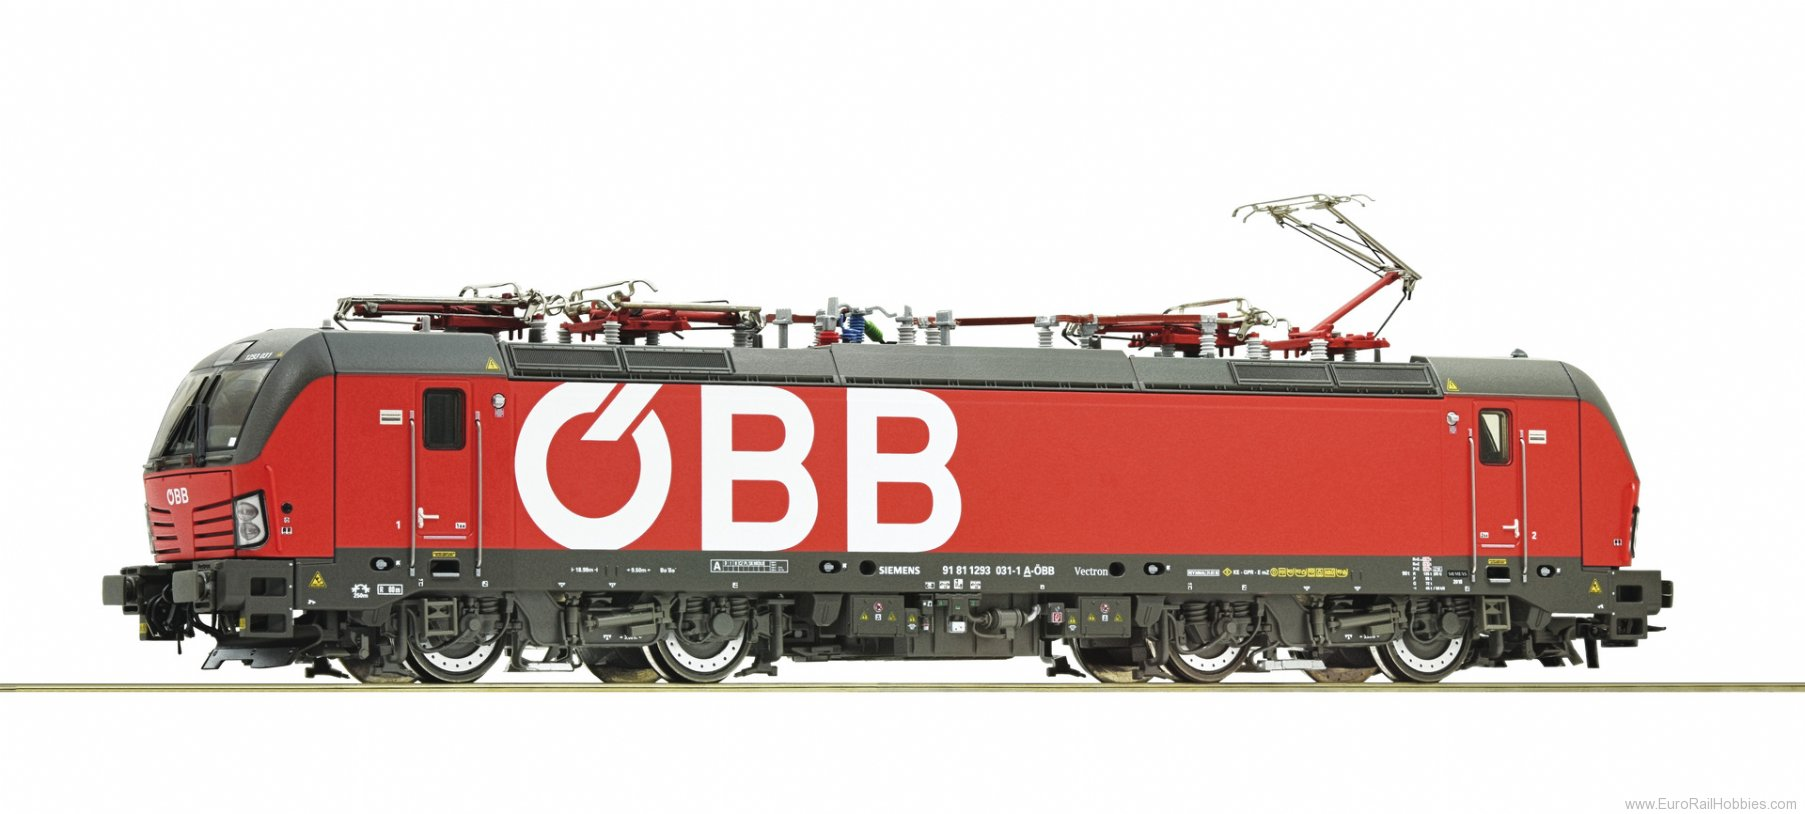 Roco 73954 Electric locomotive class 1293, OBB (Digital